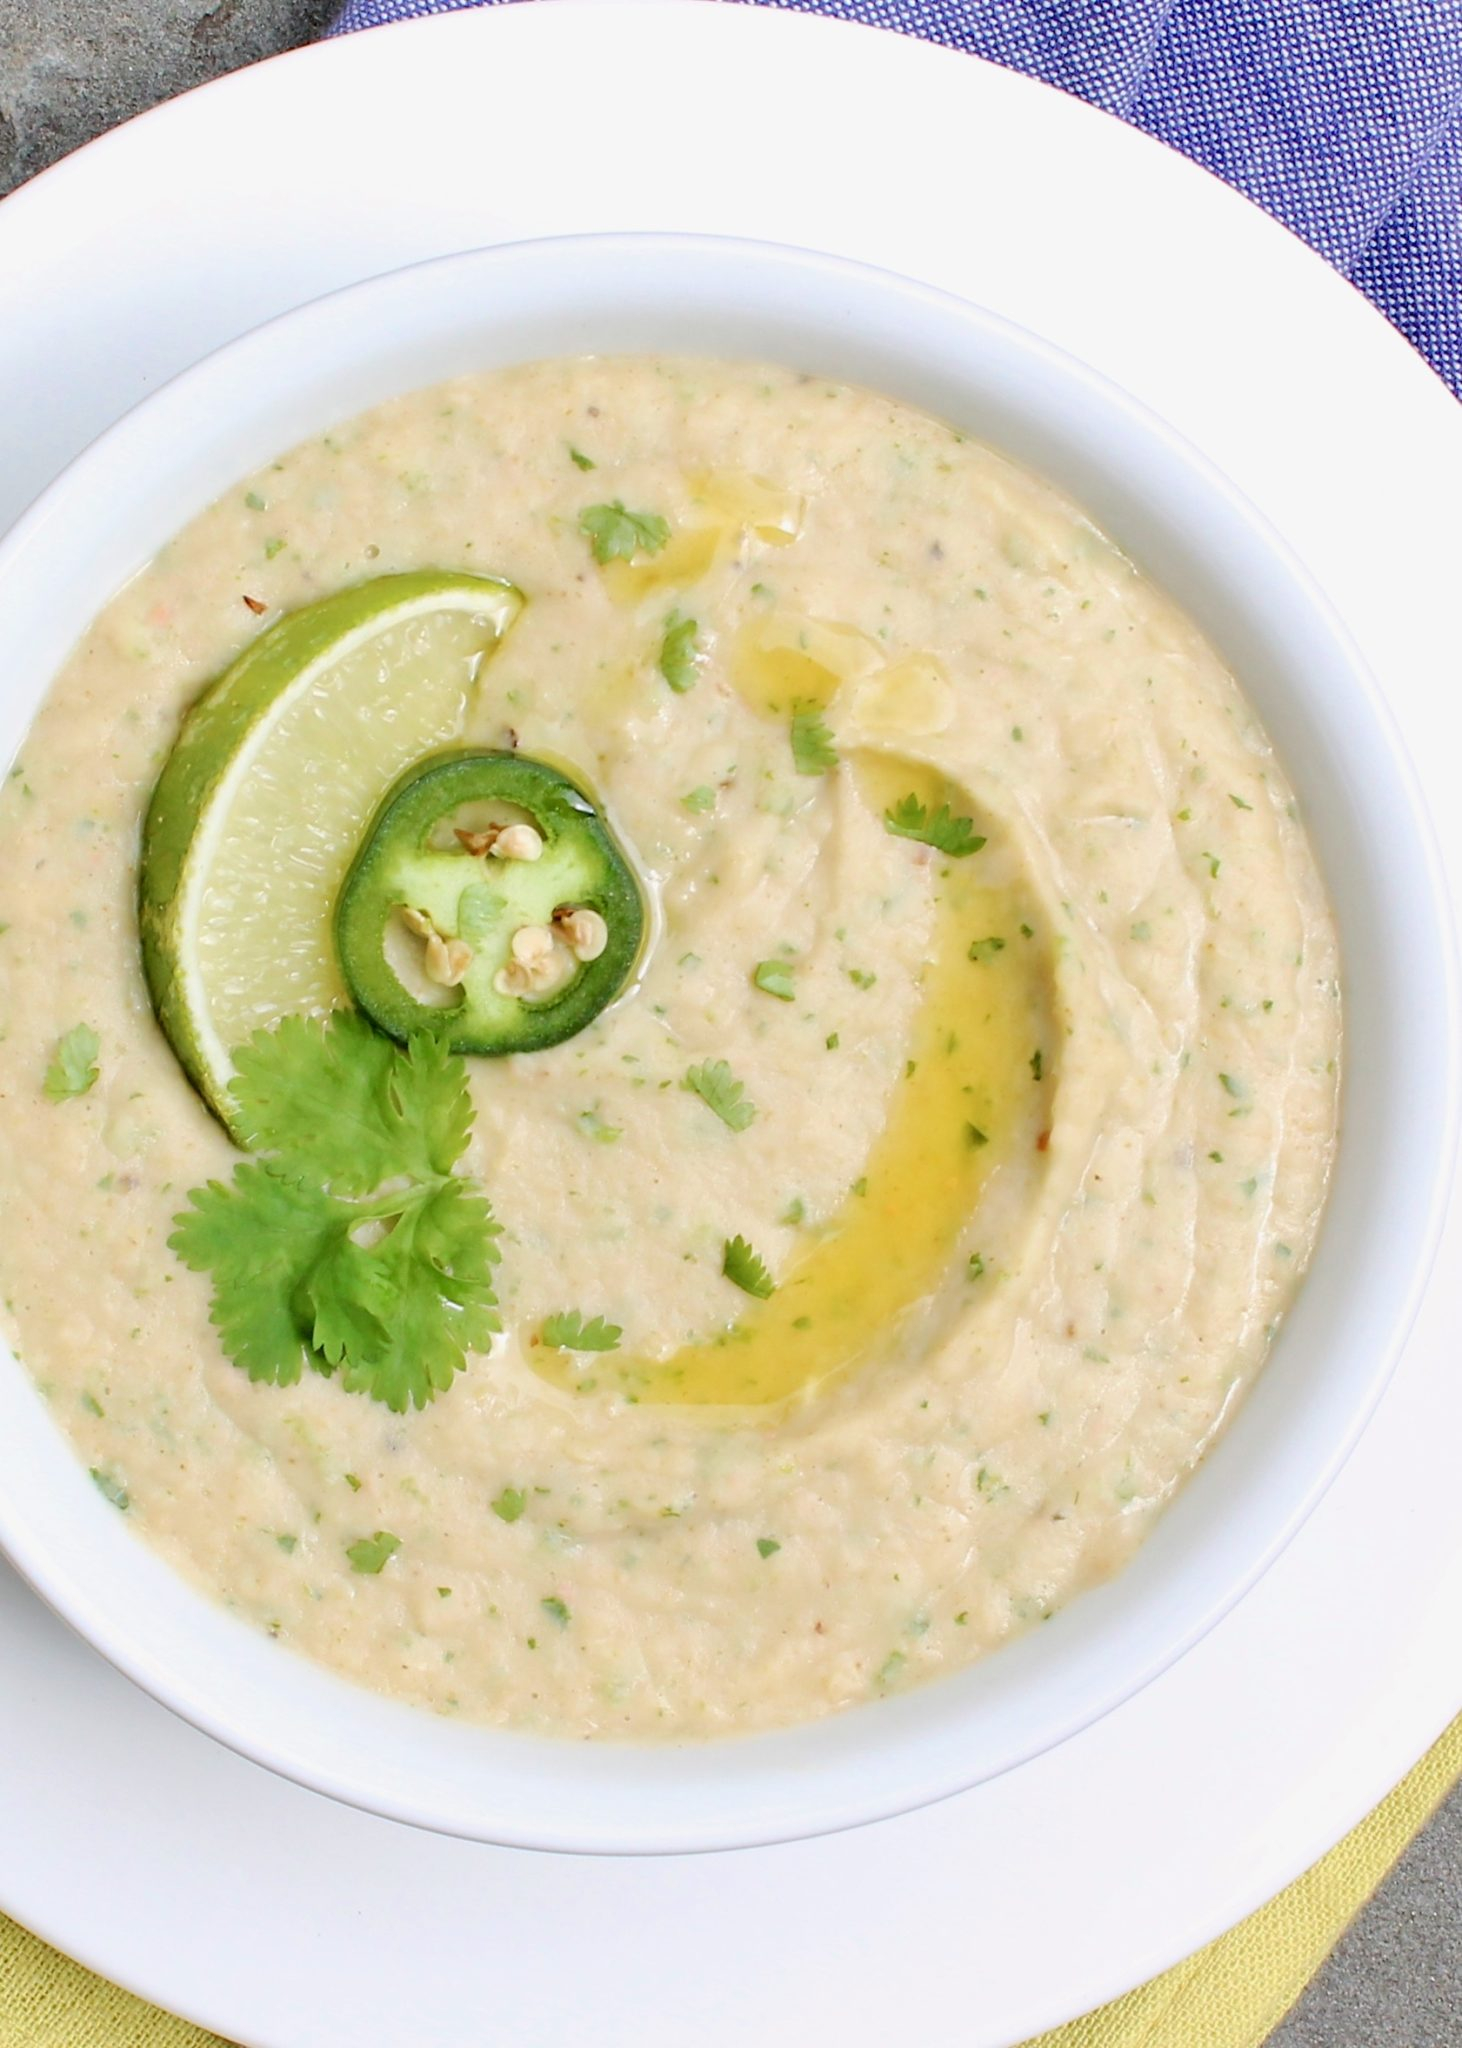 Cilantro Lime White Bean Hummus -This healthy, easy-to-make hummus redefines the classic condiment by shaking up the usual ingredients and adding south-of-the-border flavor.